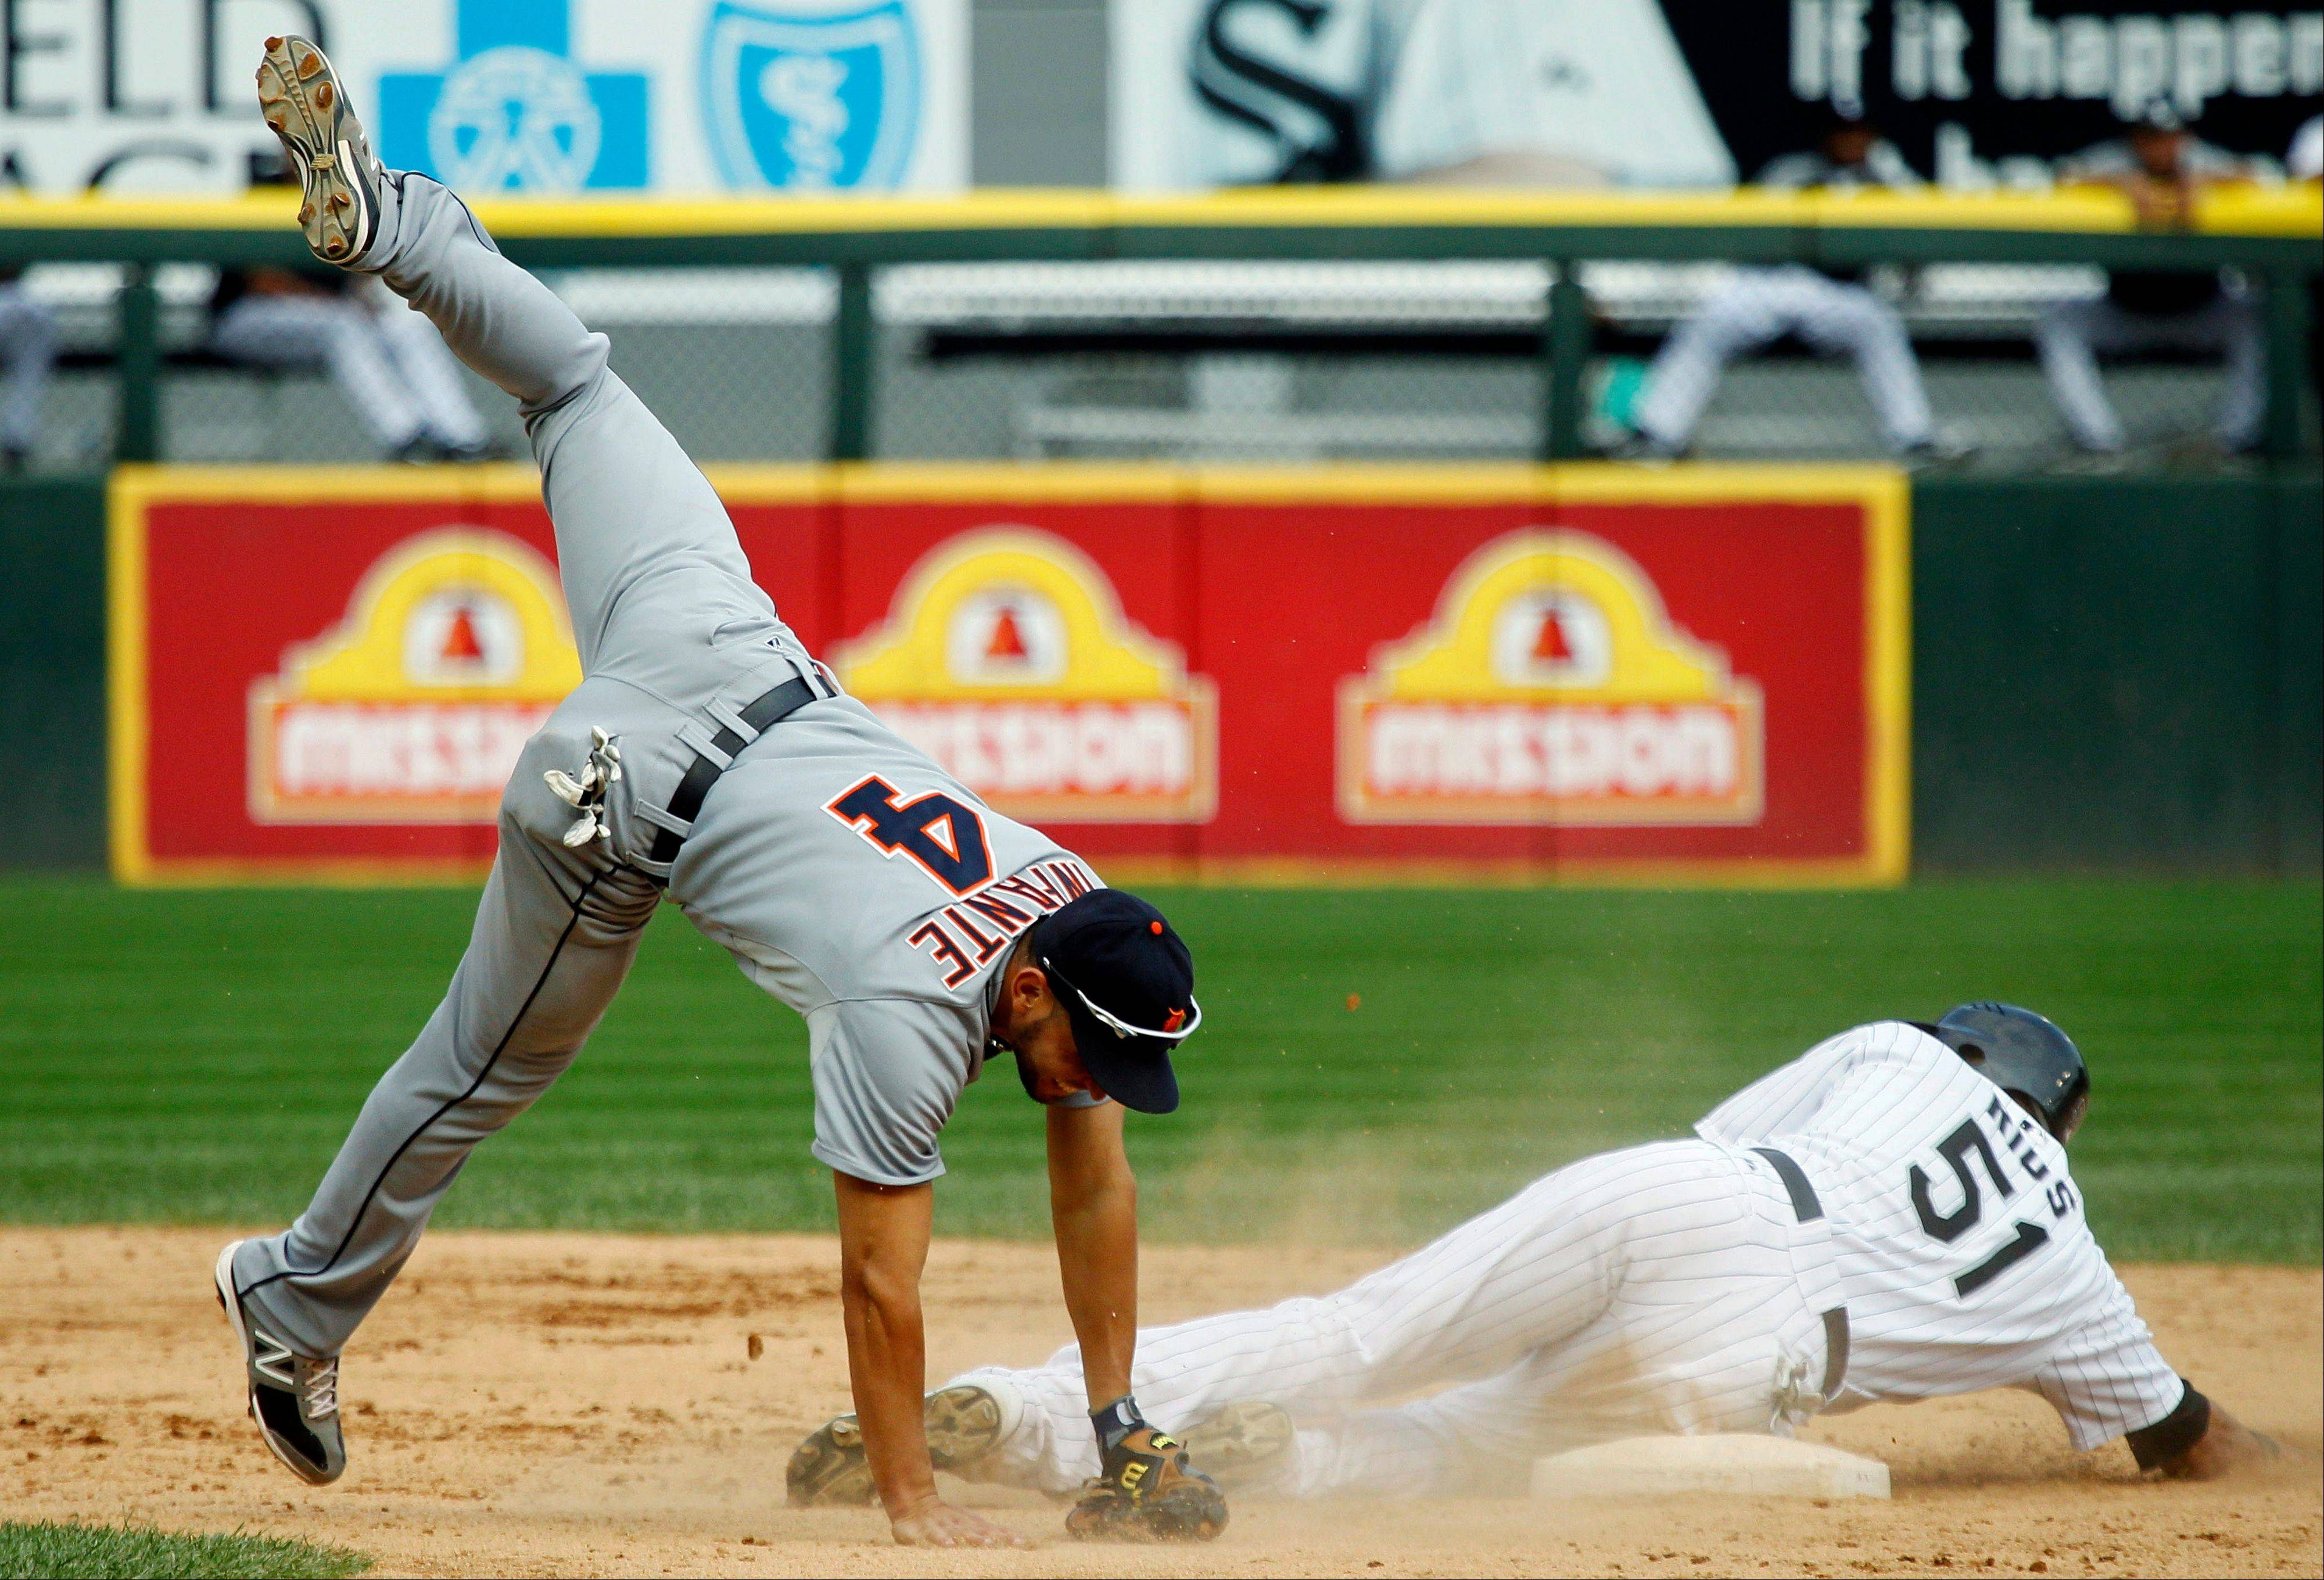 Detroit Tigers second baseman Omar Infante is upended trying to complete the double play by White Sox outfielder Alex Rios during Monday's fifth inning at U.S. Cellular Field.